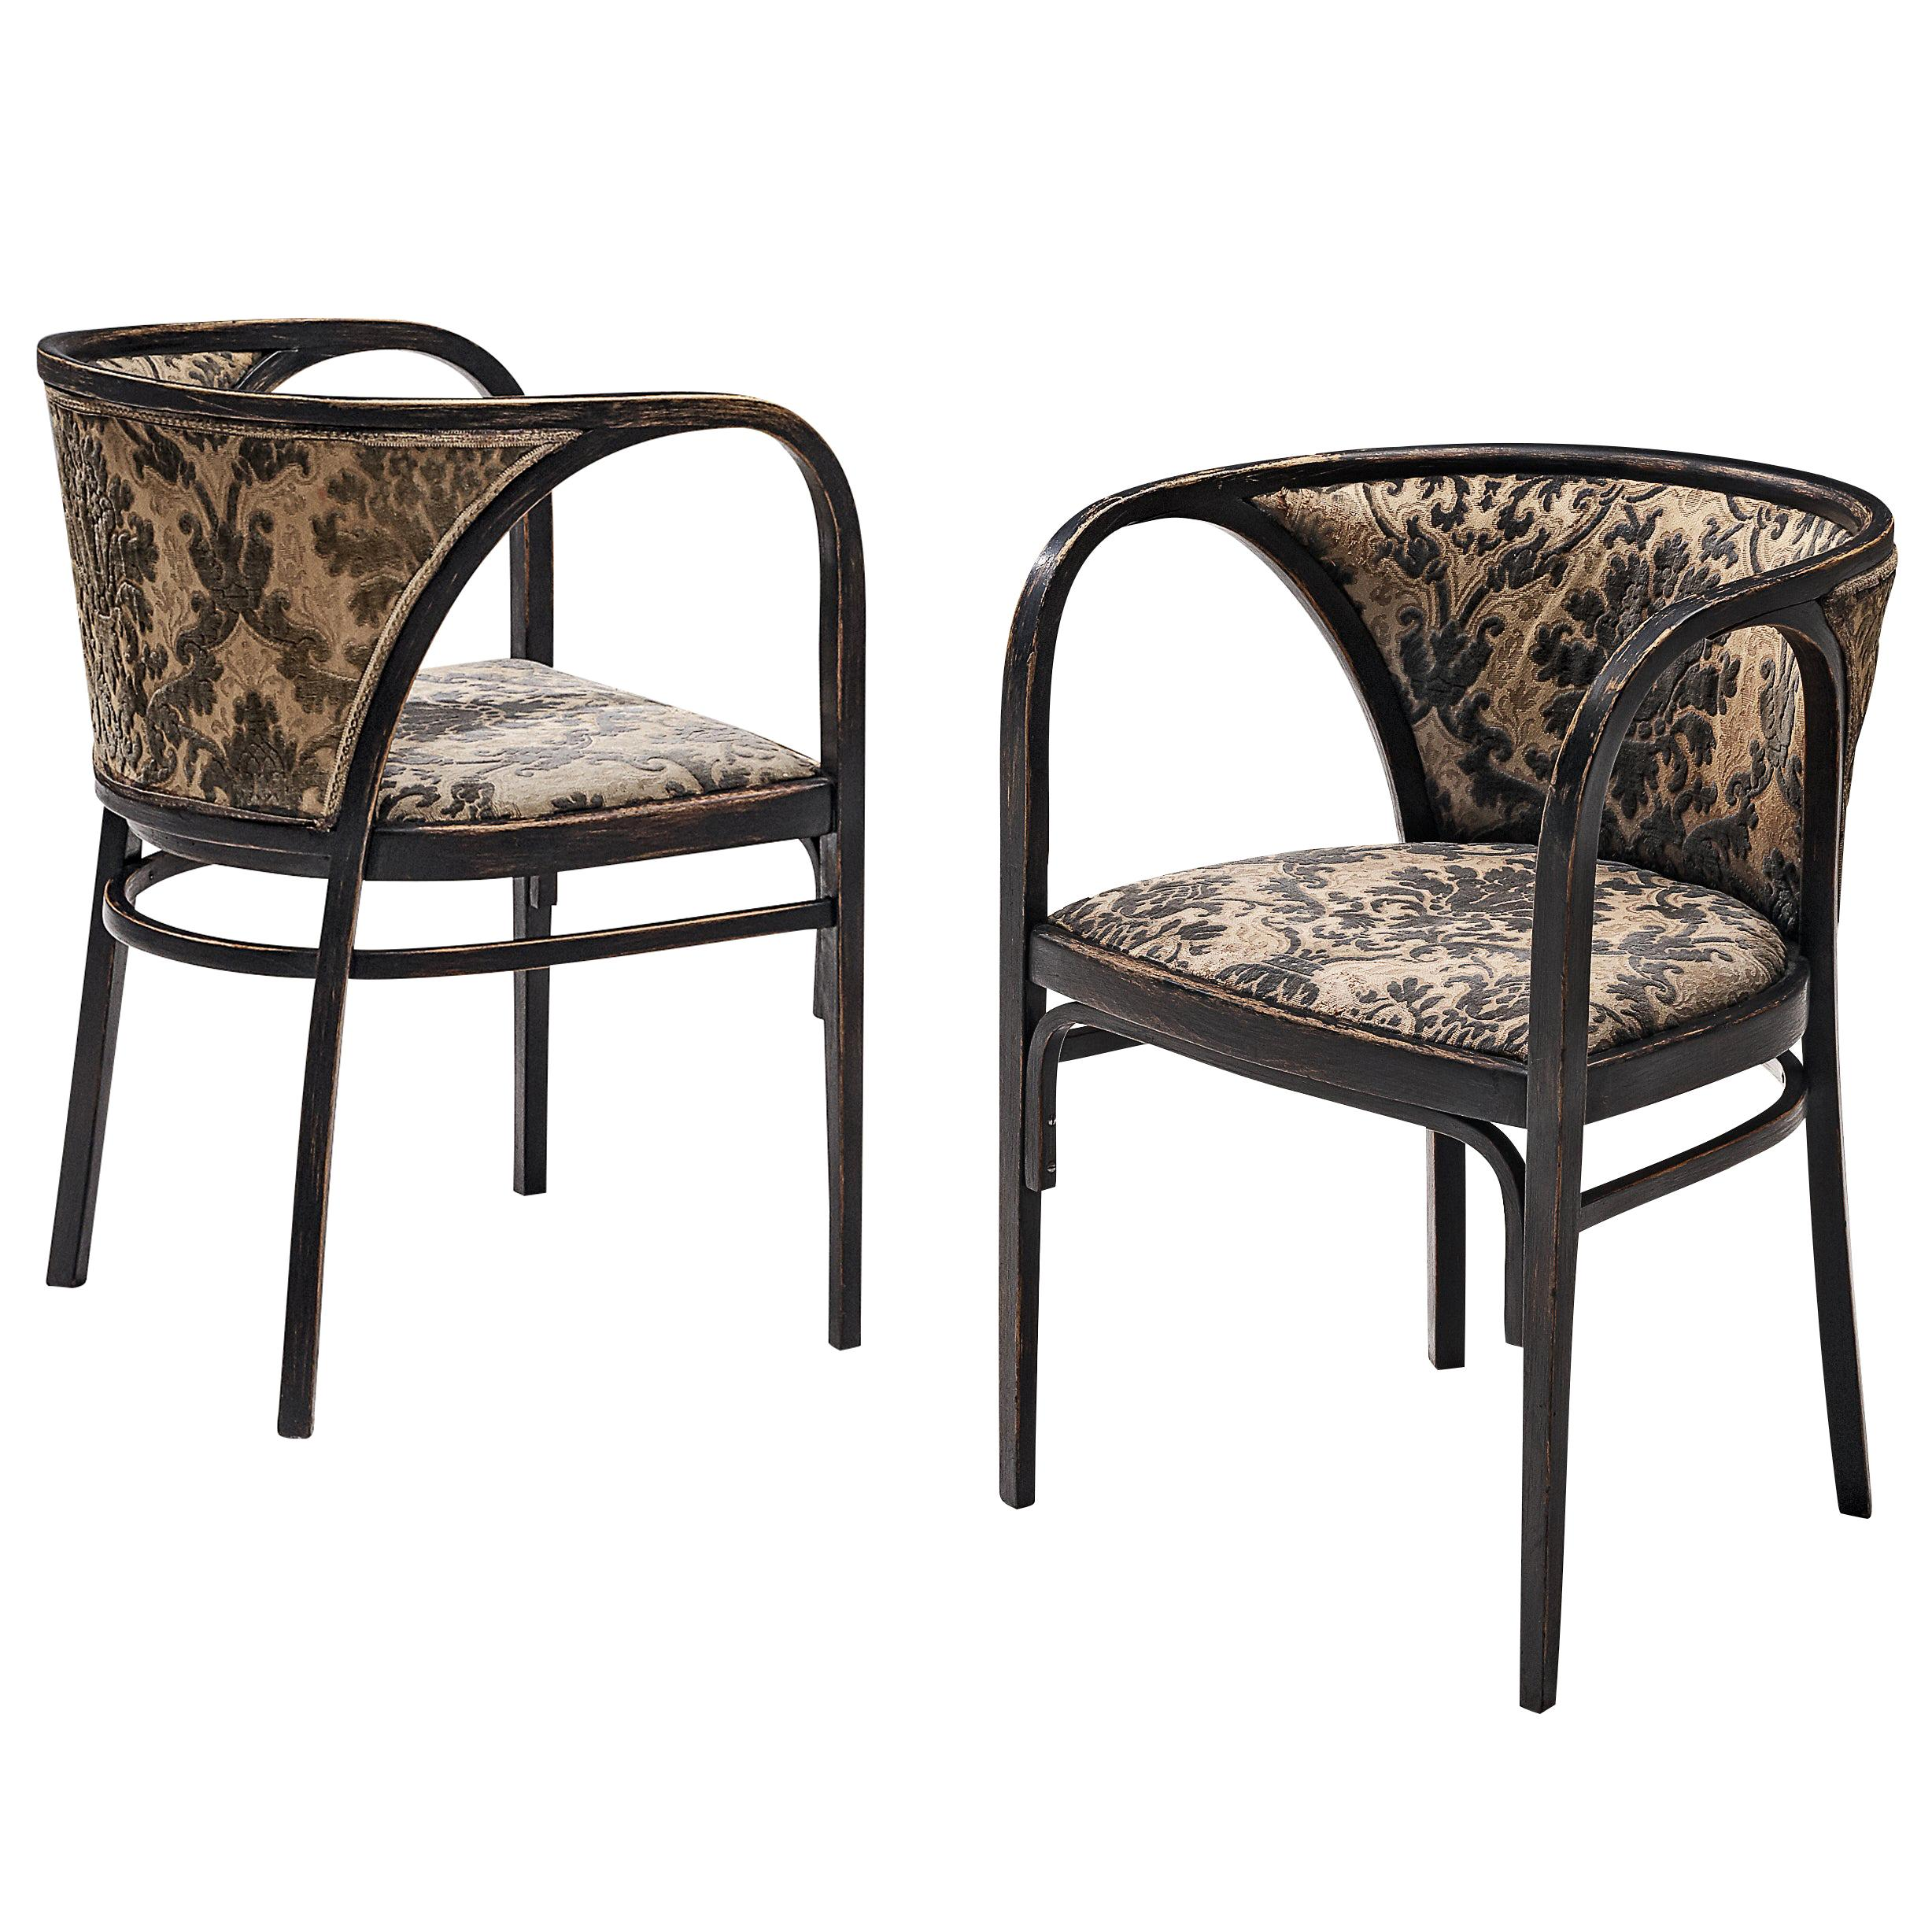 Thonet Pair of Armchairs in Patterned Upholstery